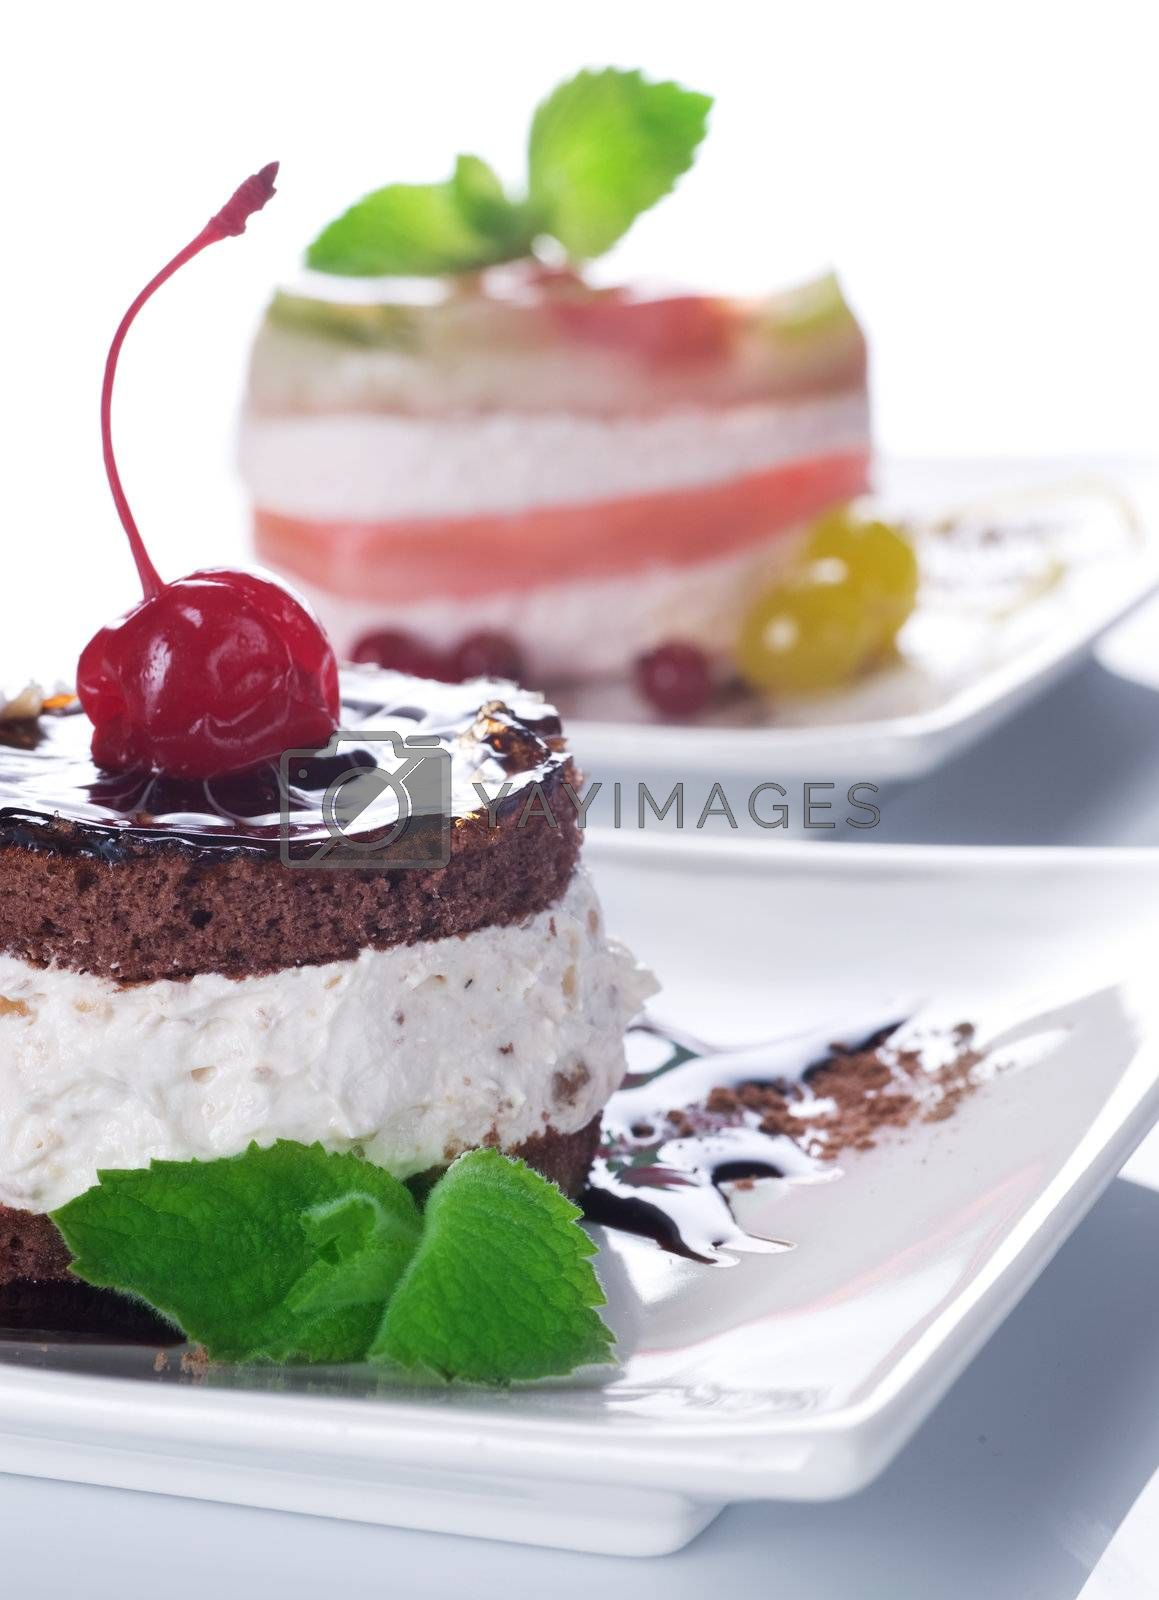 Cherry Cake With Chocolate Cream